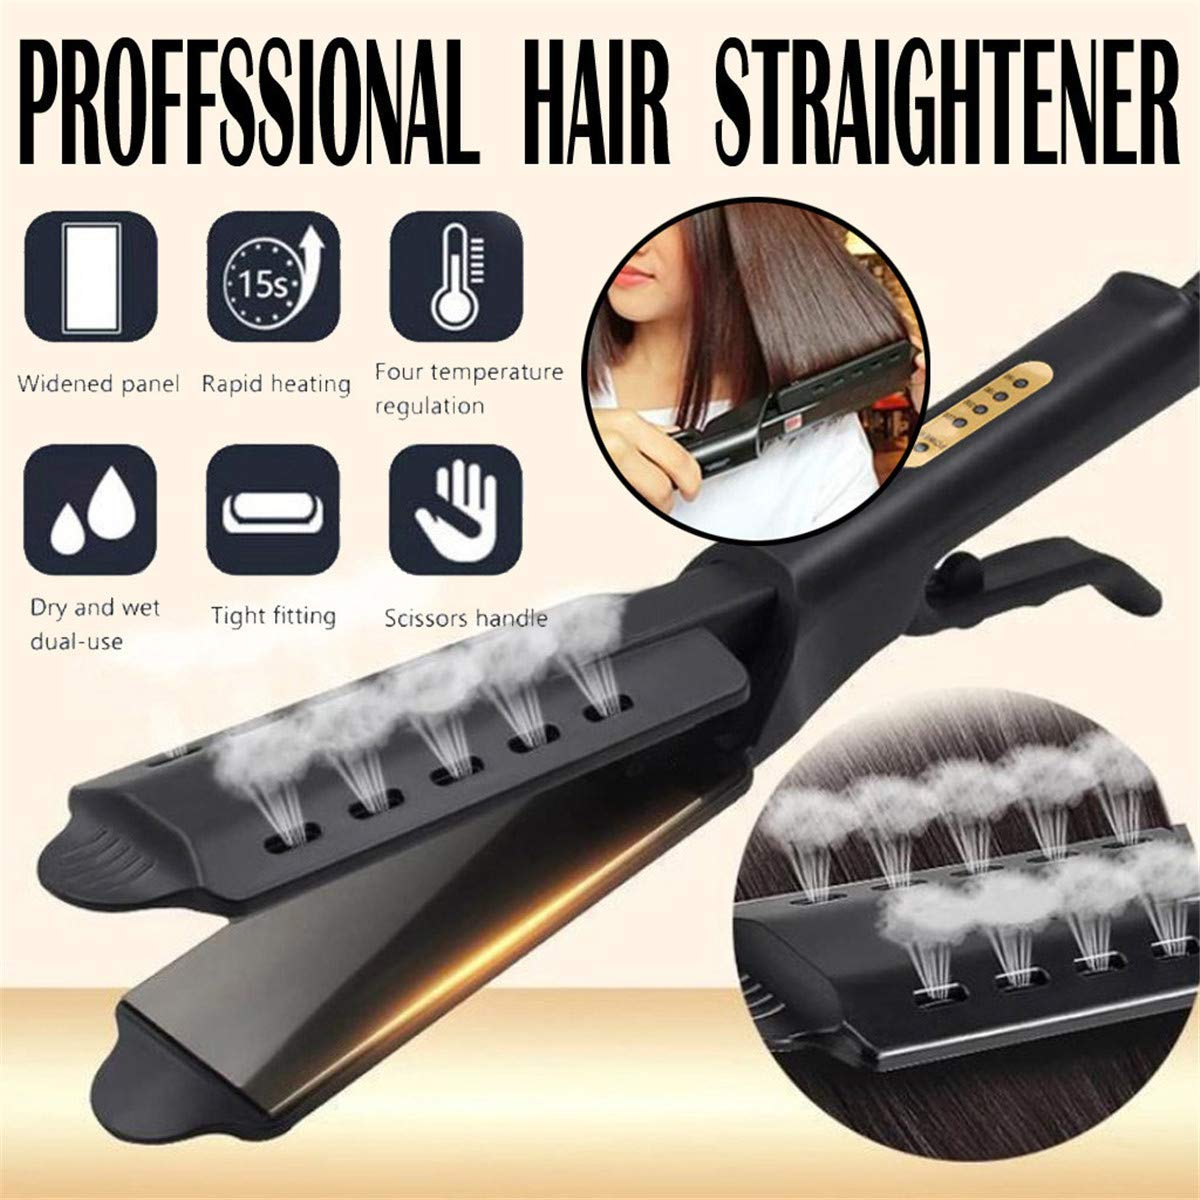 Ceramic Tourmaline Ionic Flat Iron Hair Straightener 2020 Four Gear Ceramic Flat Irons Steam Ceramic Vapor Hair Styling Tools